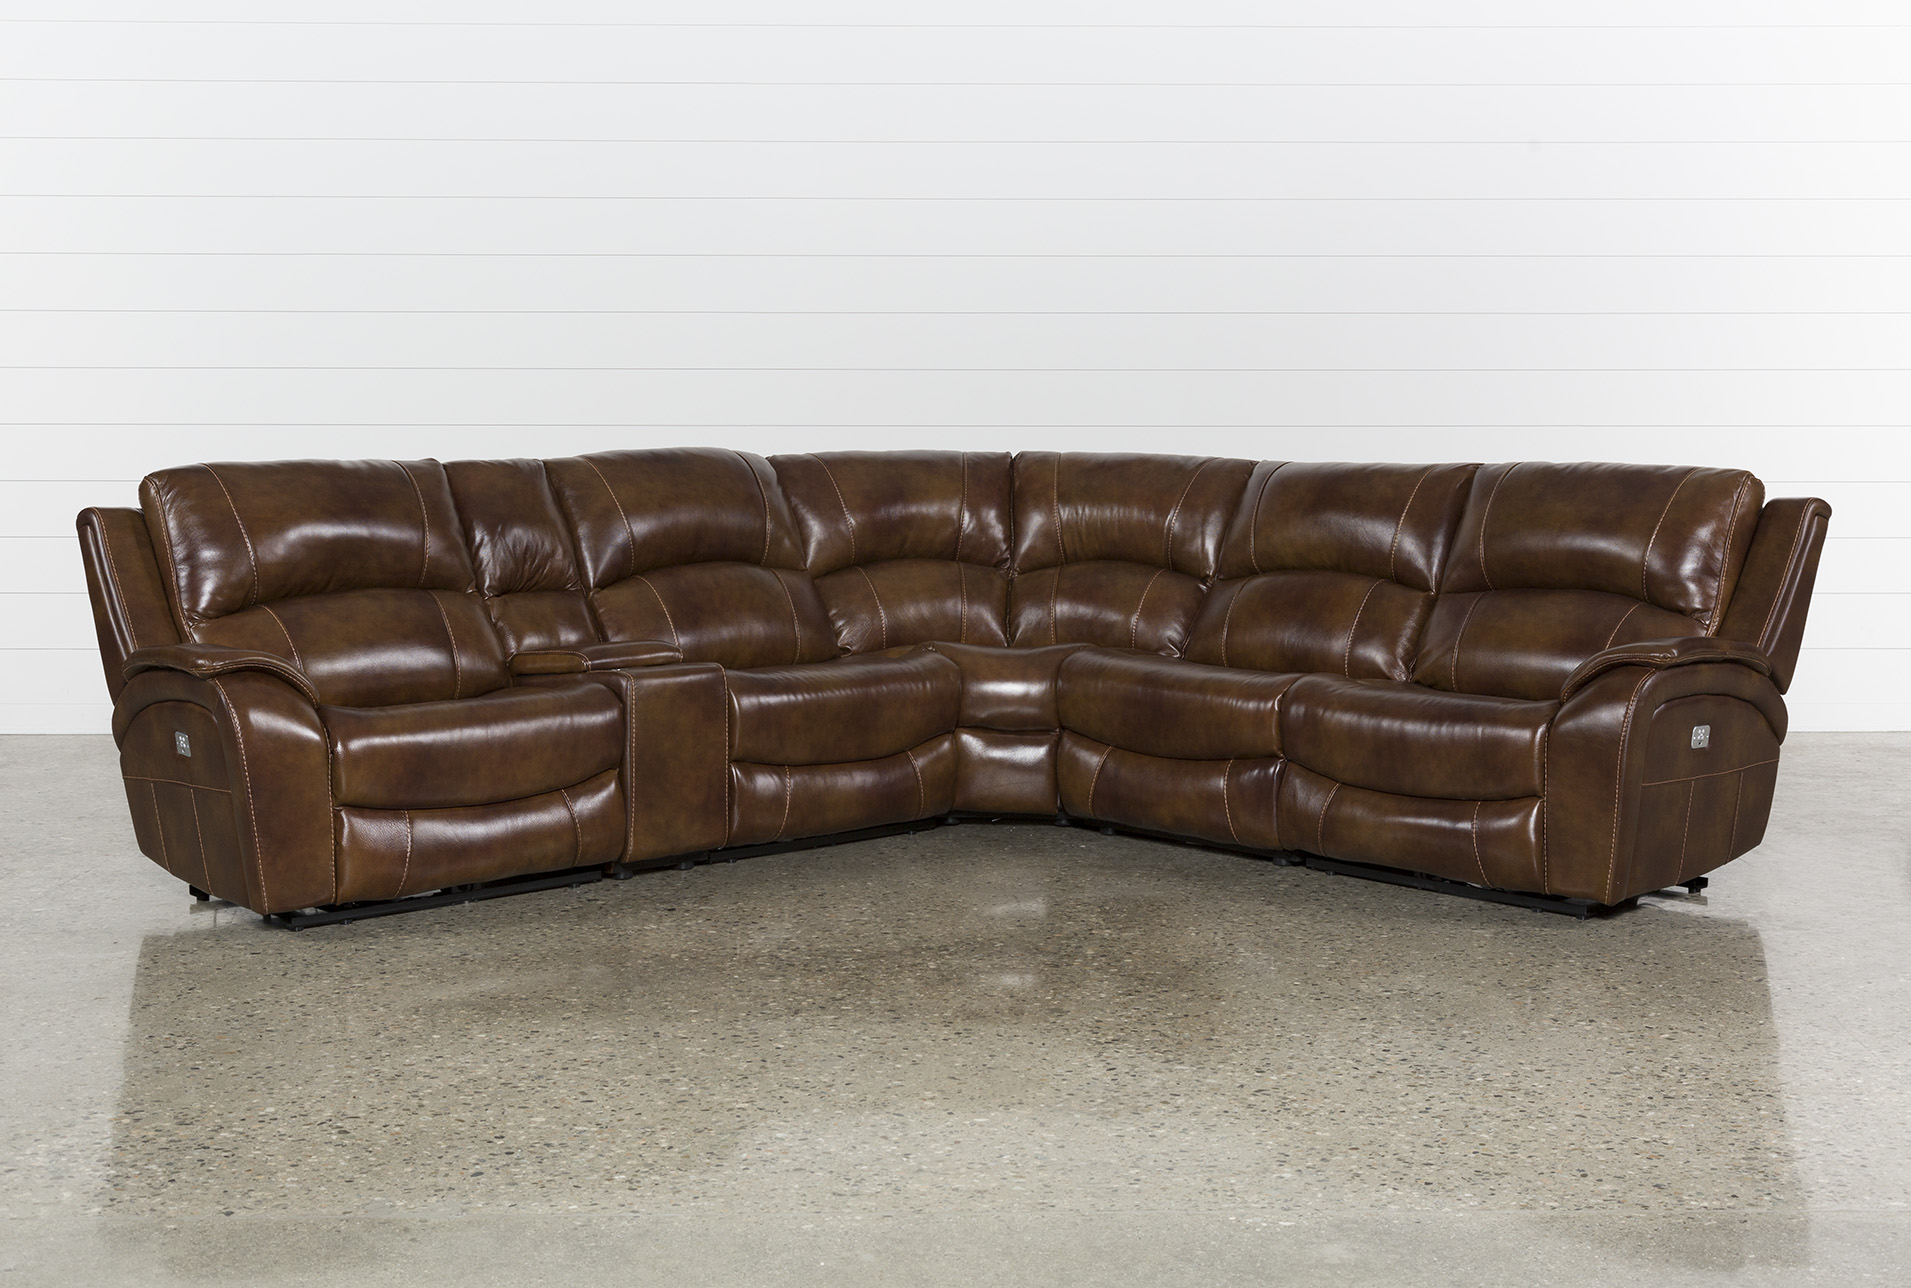 Travis Cognac Leather 6 Piece Power Reclining Sectional With Power Headrest Usb